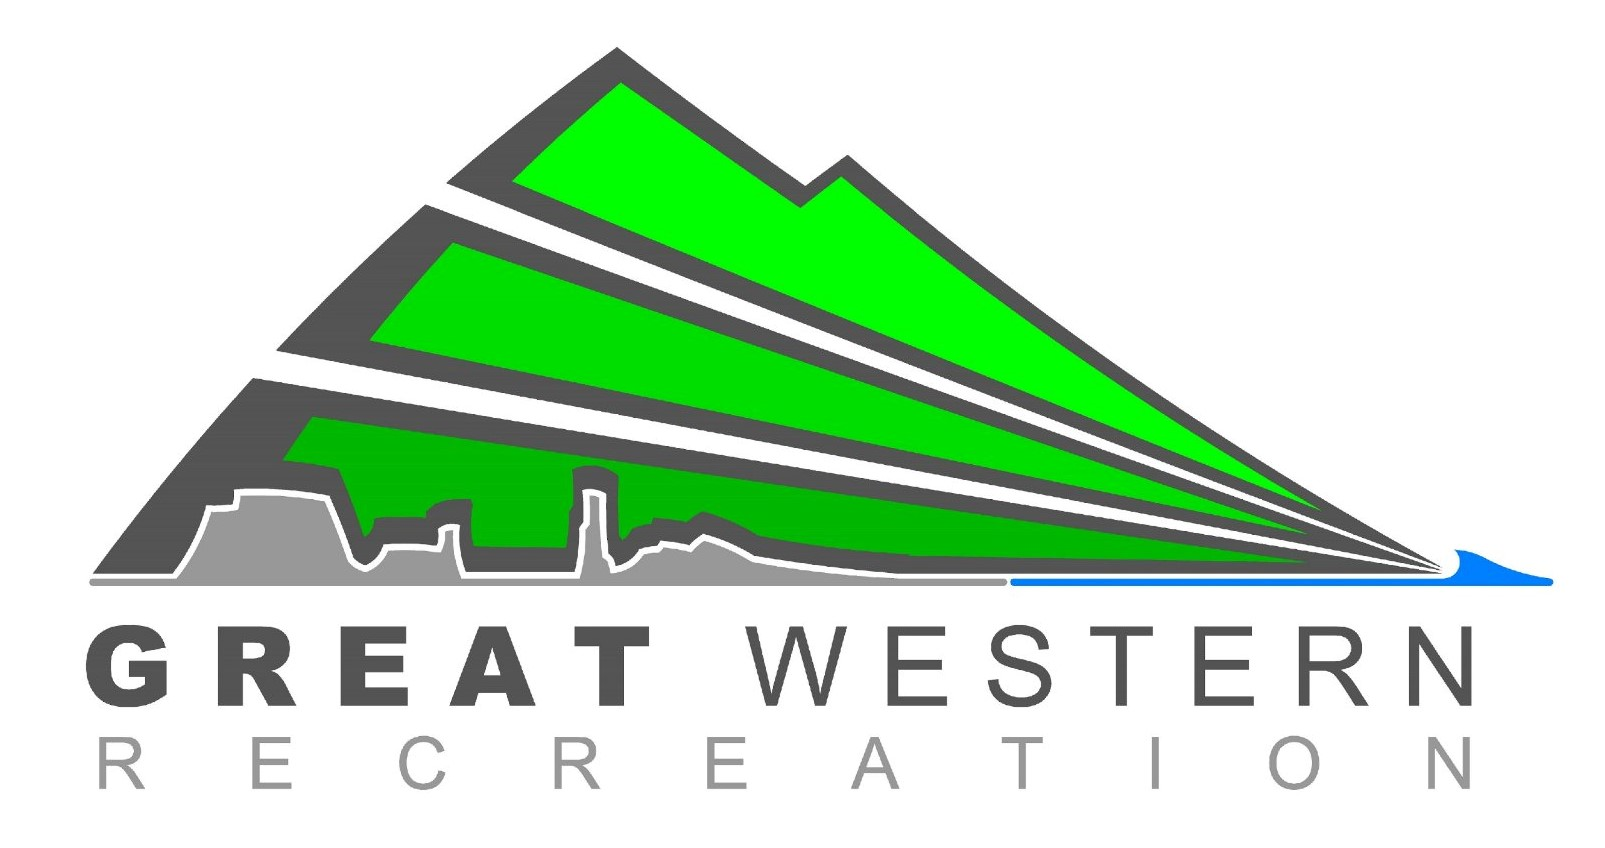 Great Western Recreation